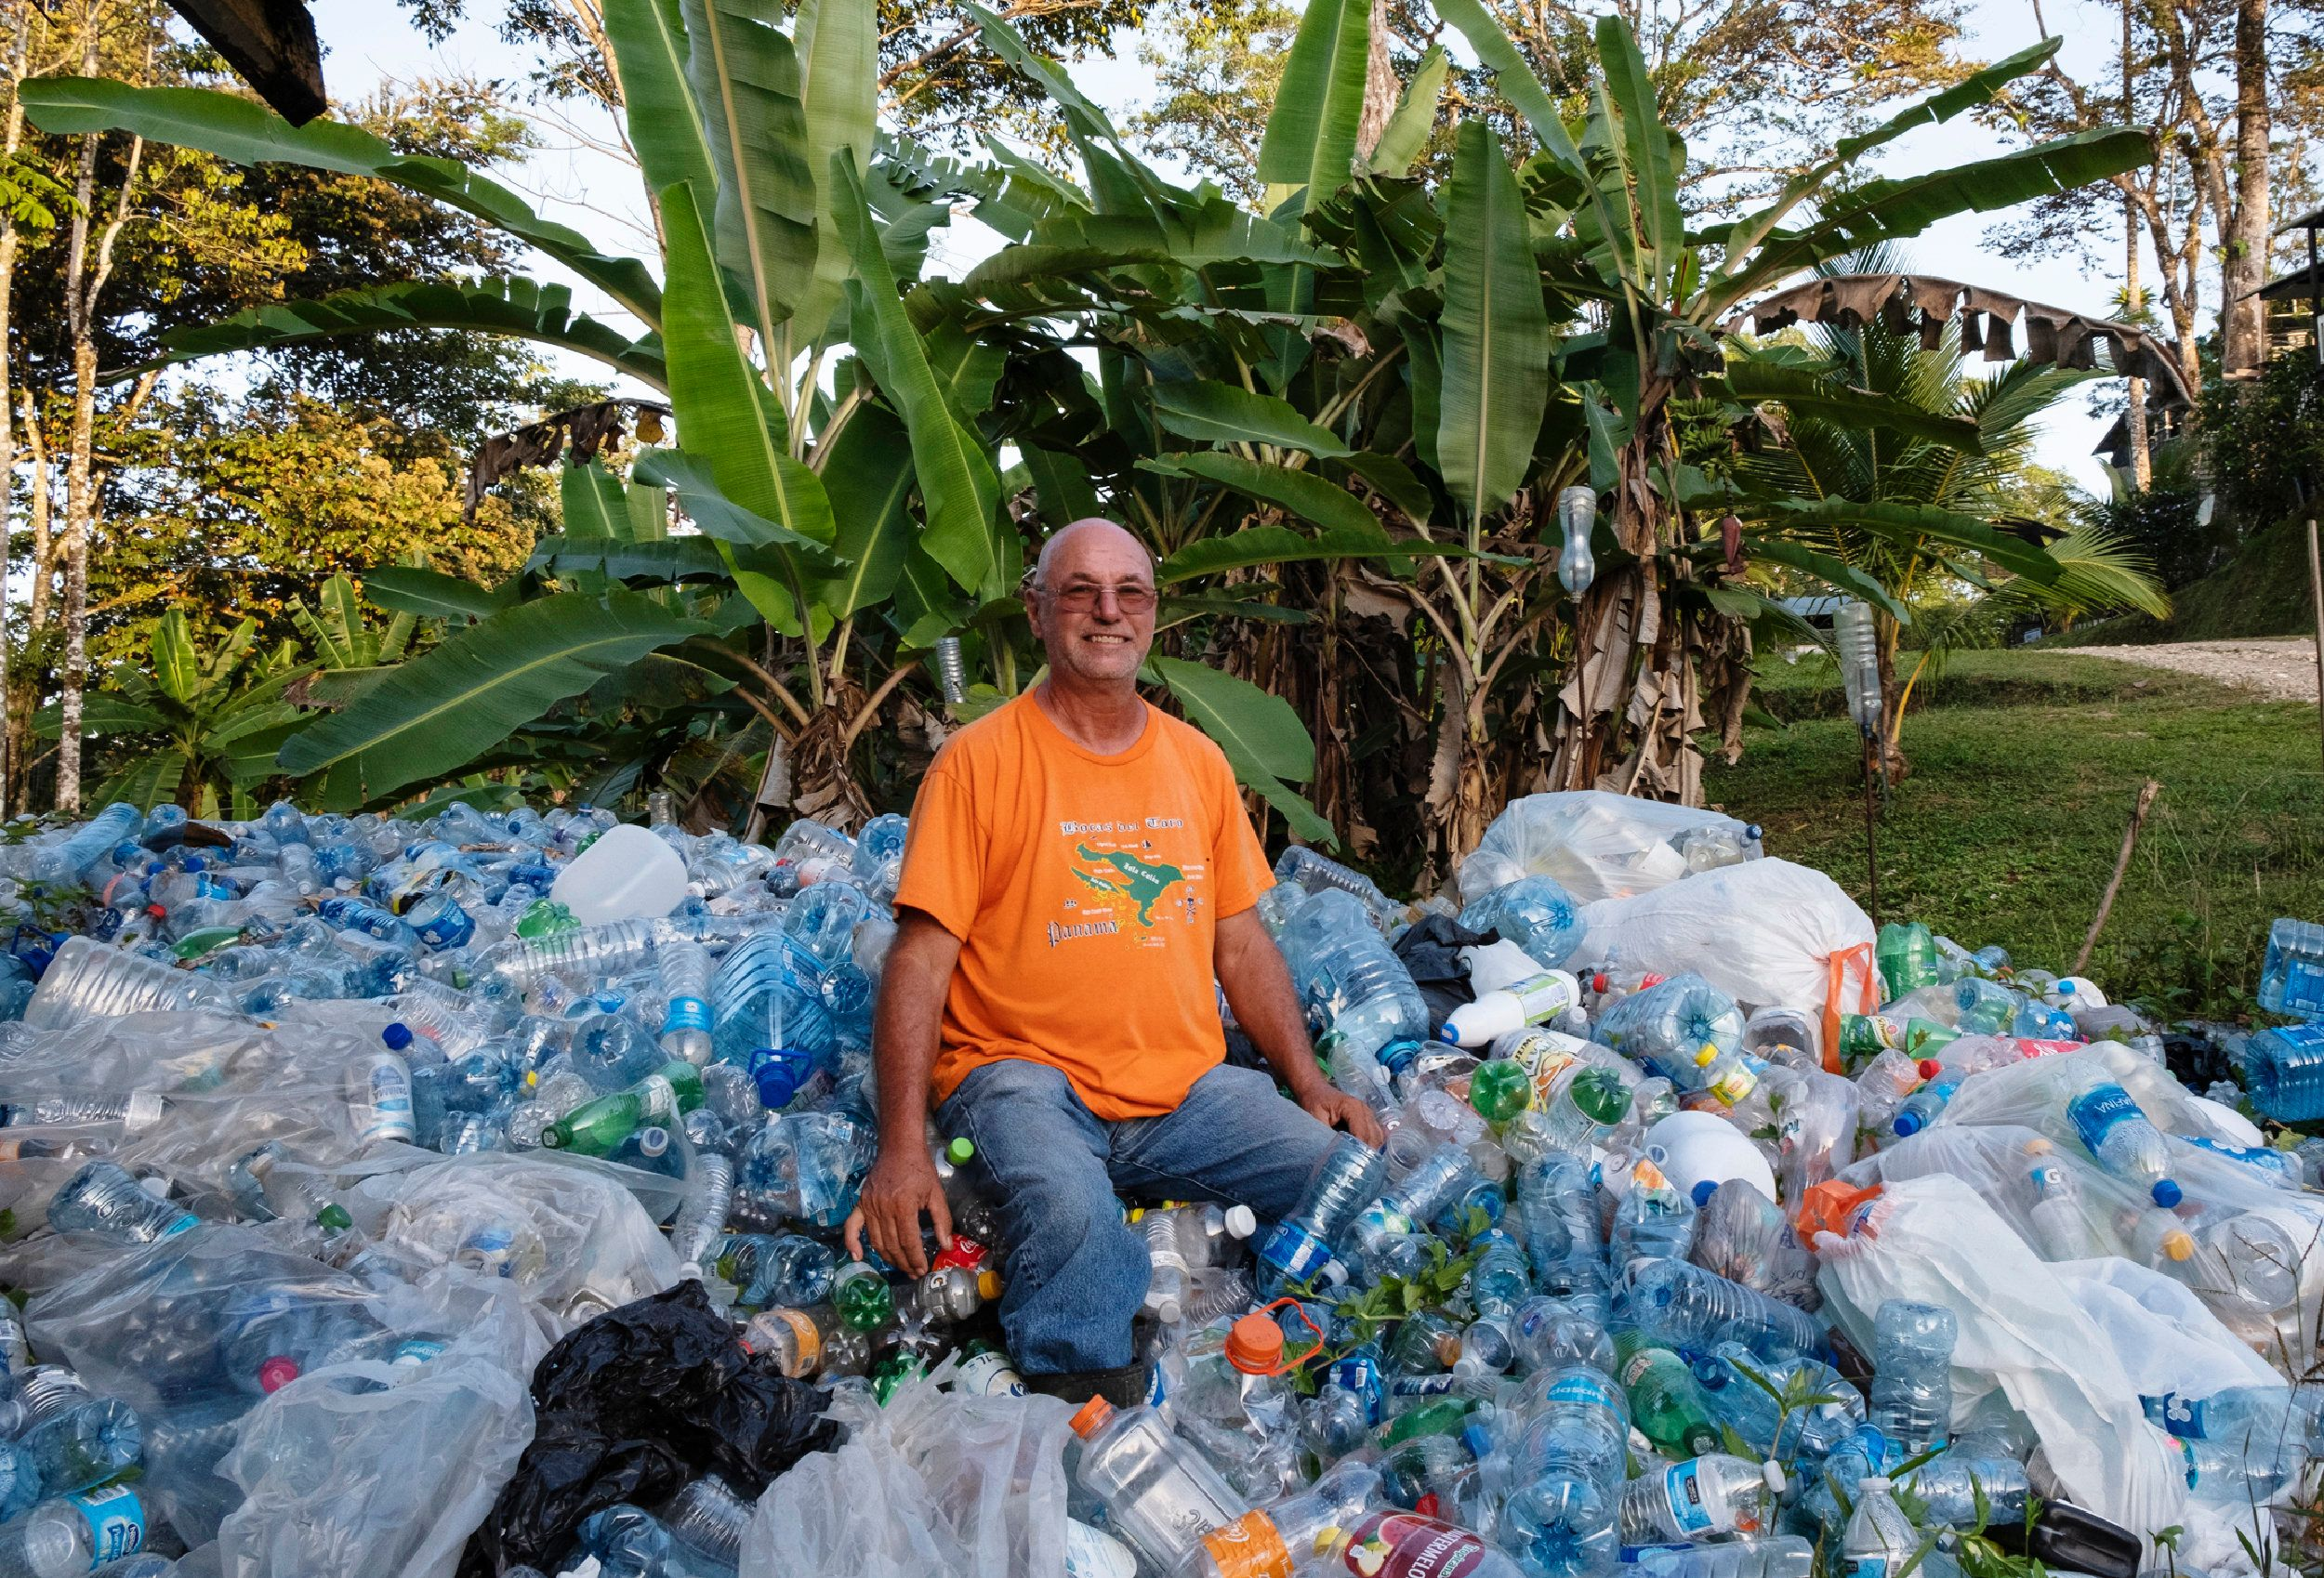 Bezeau sits on a pile of plastic bottles, which are exchanged for 5 cents.